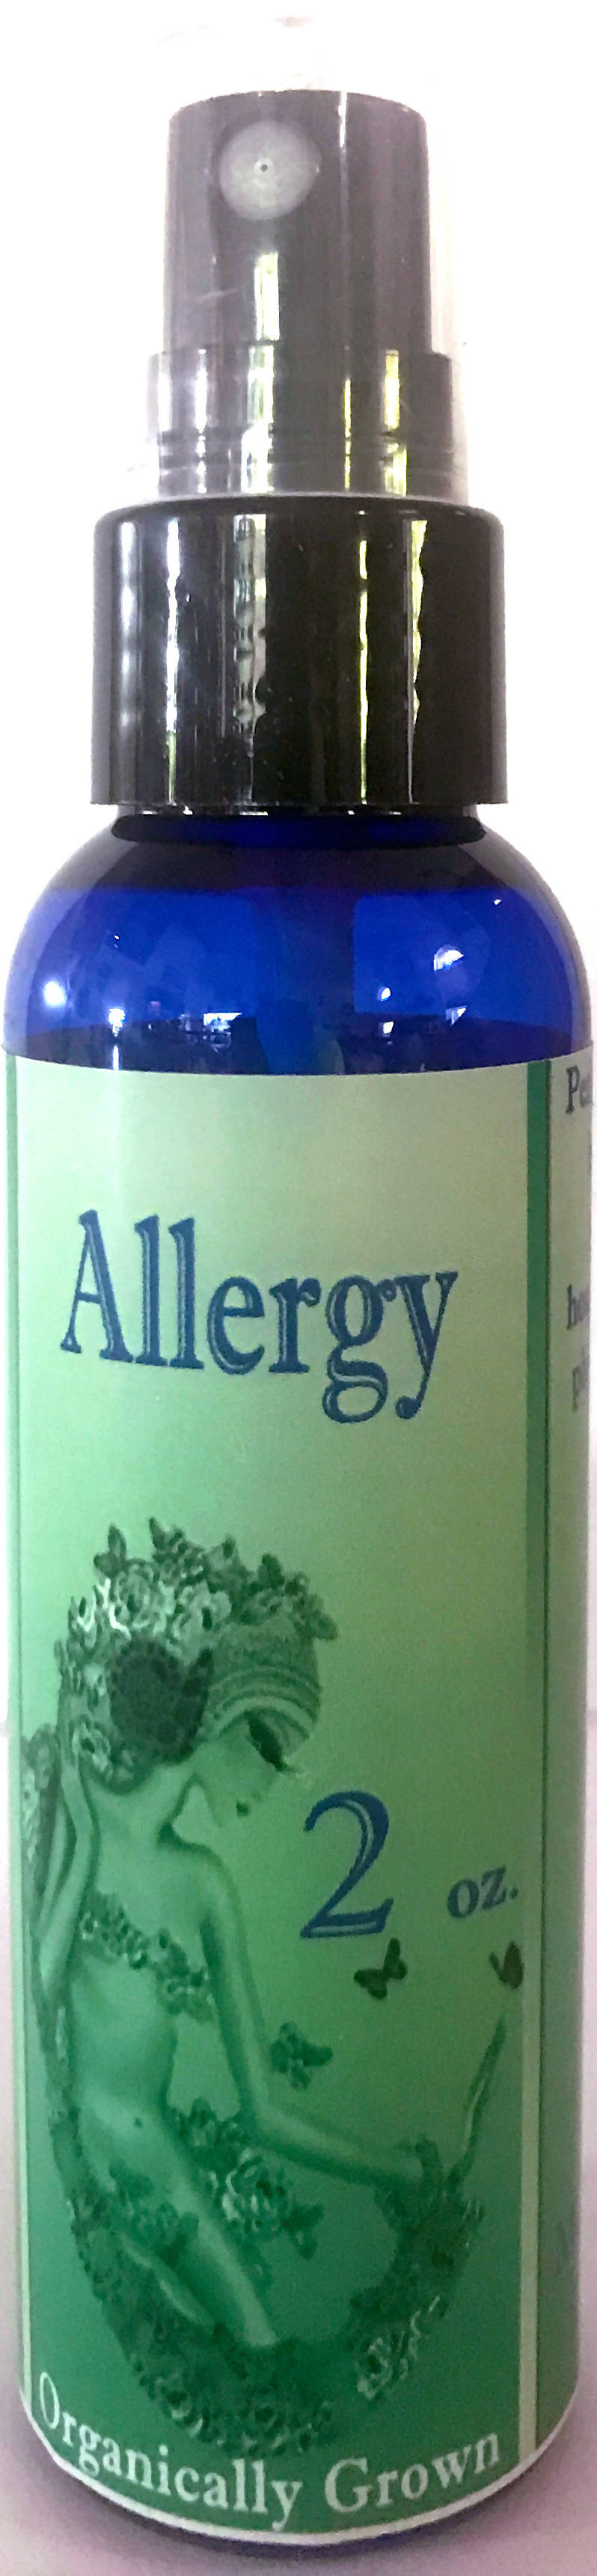 Allergy (lavender/sage scent) 2 oz Spray